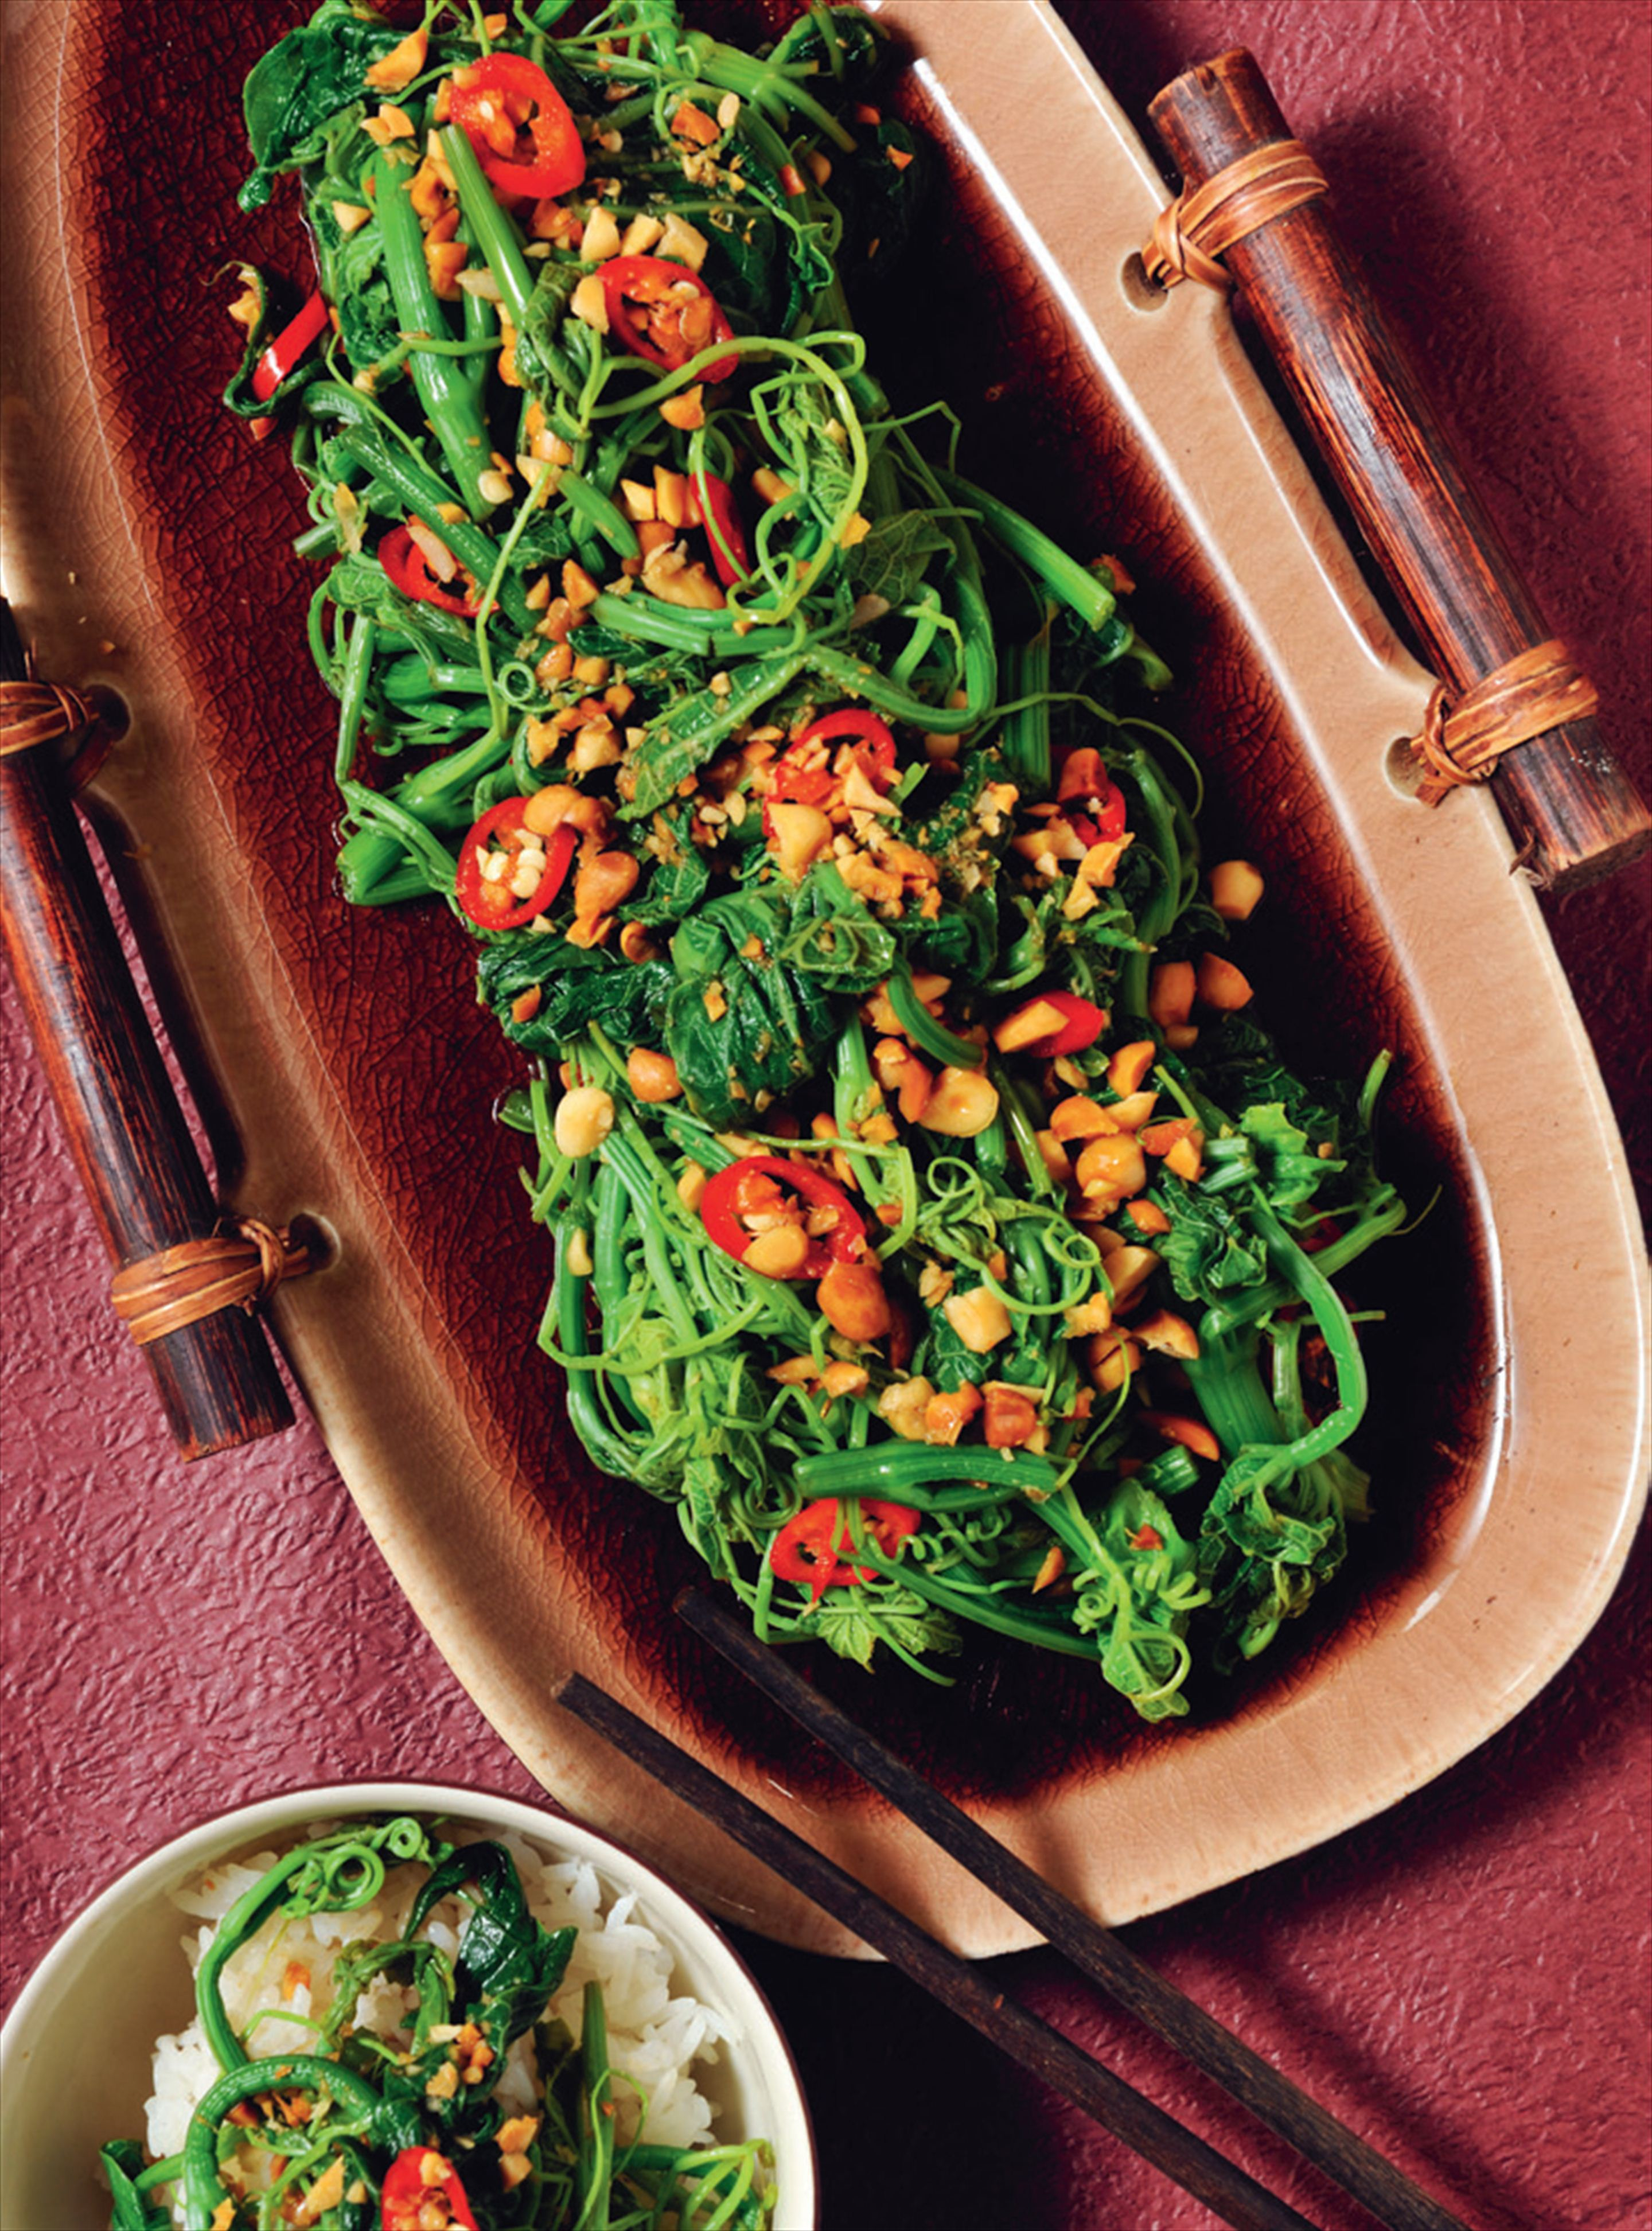 Choko tendril salad with chilli, soy and peanuts